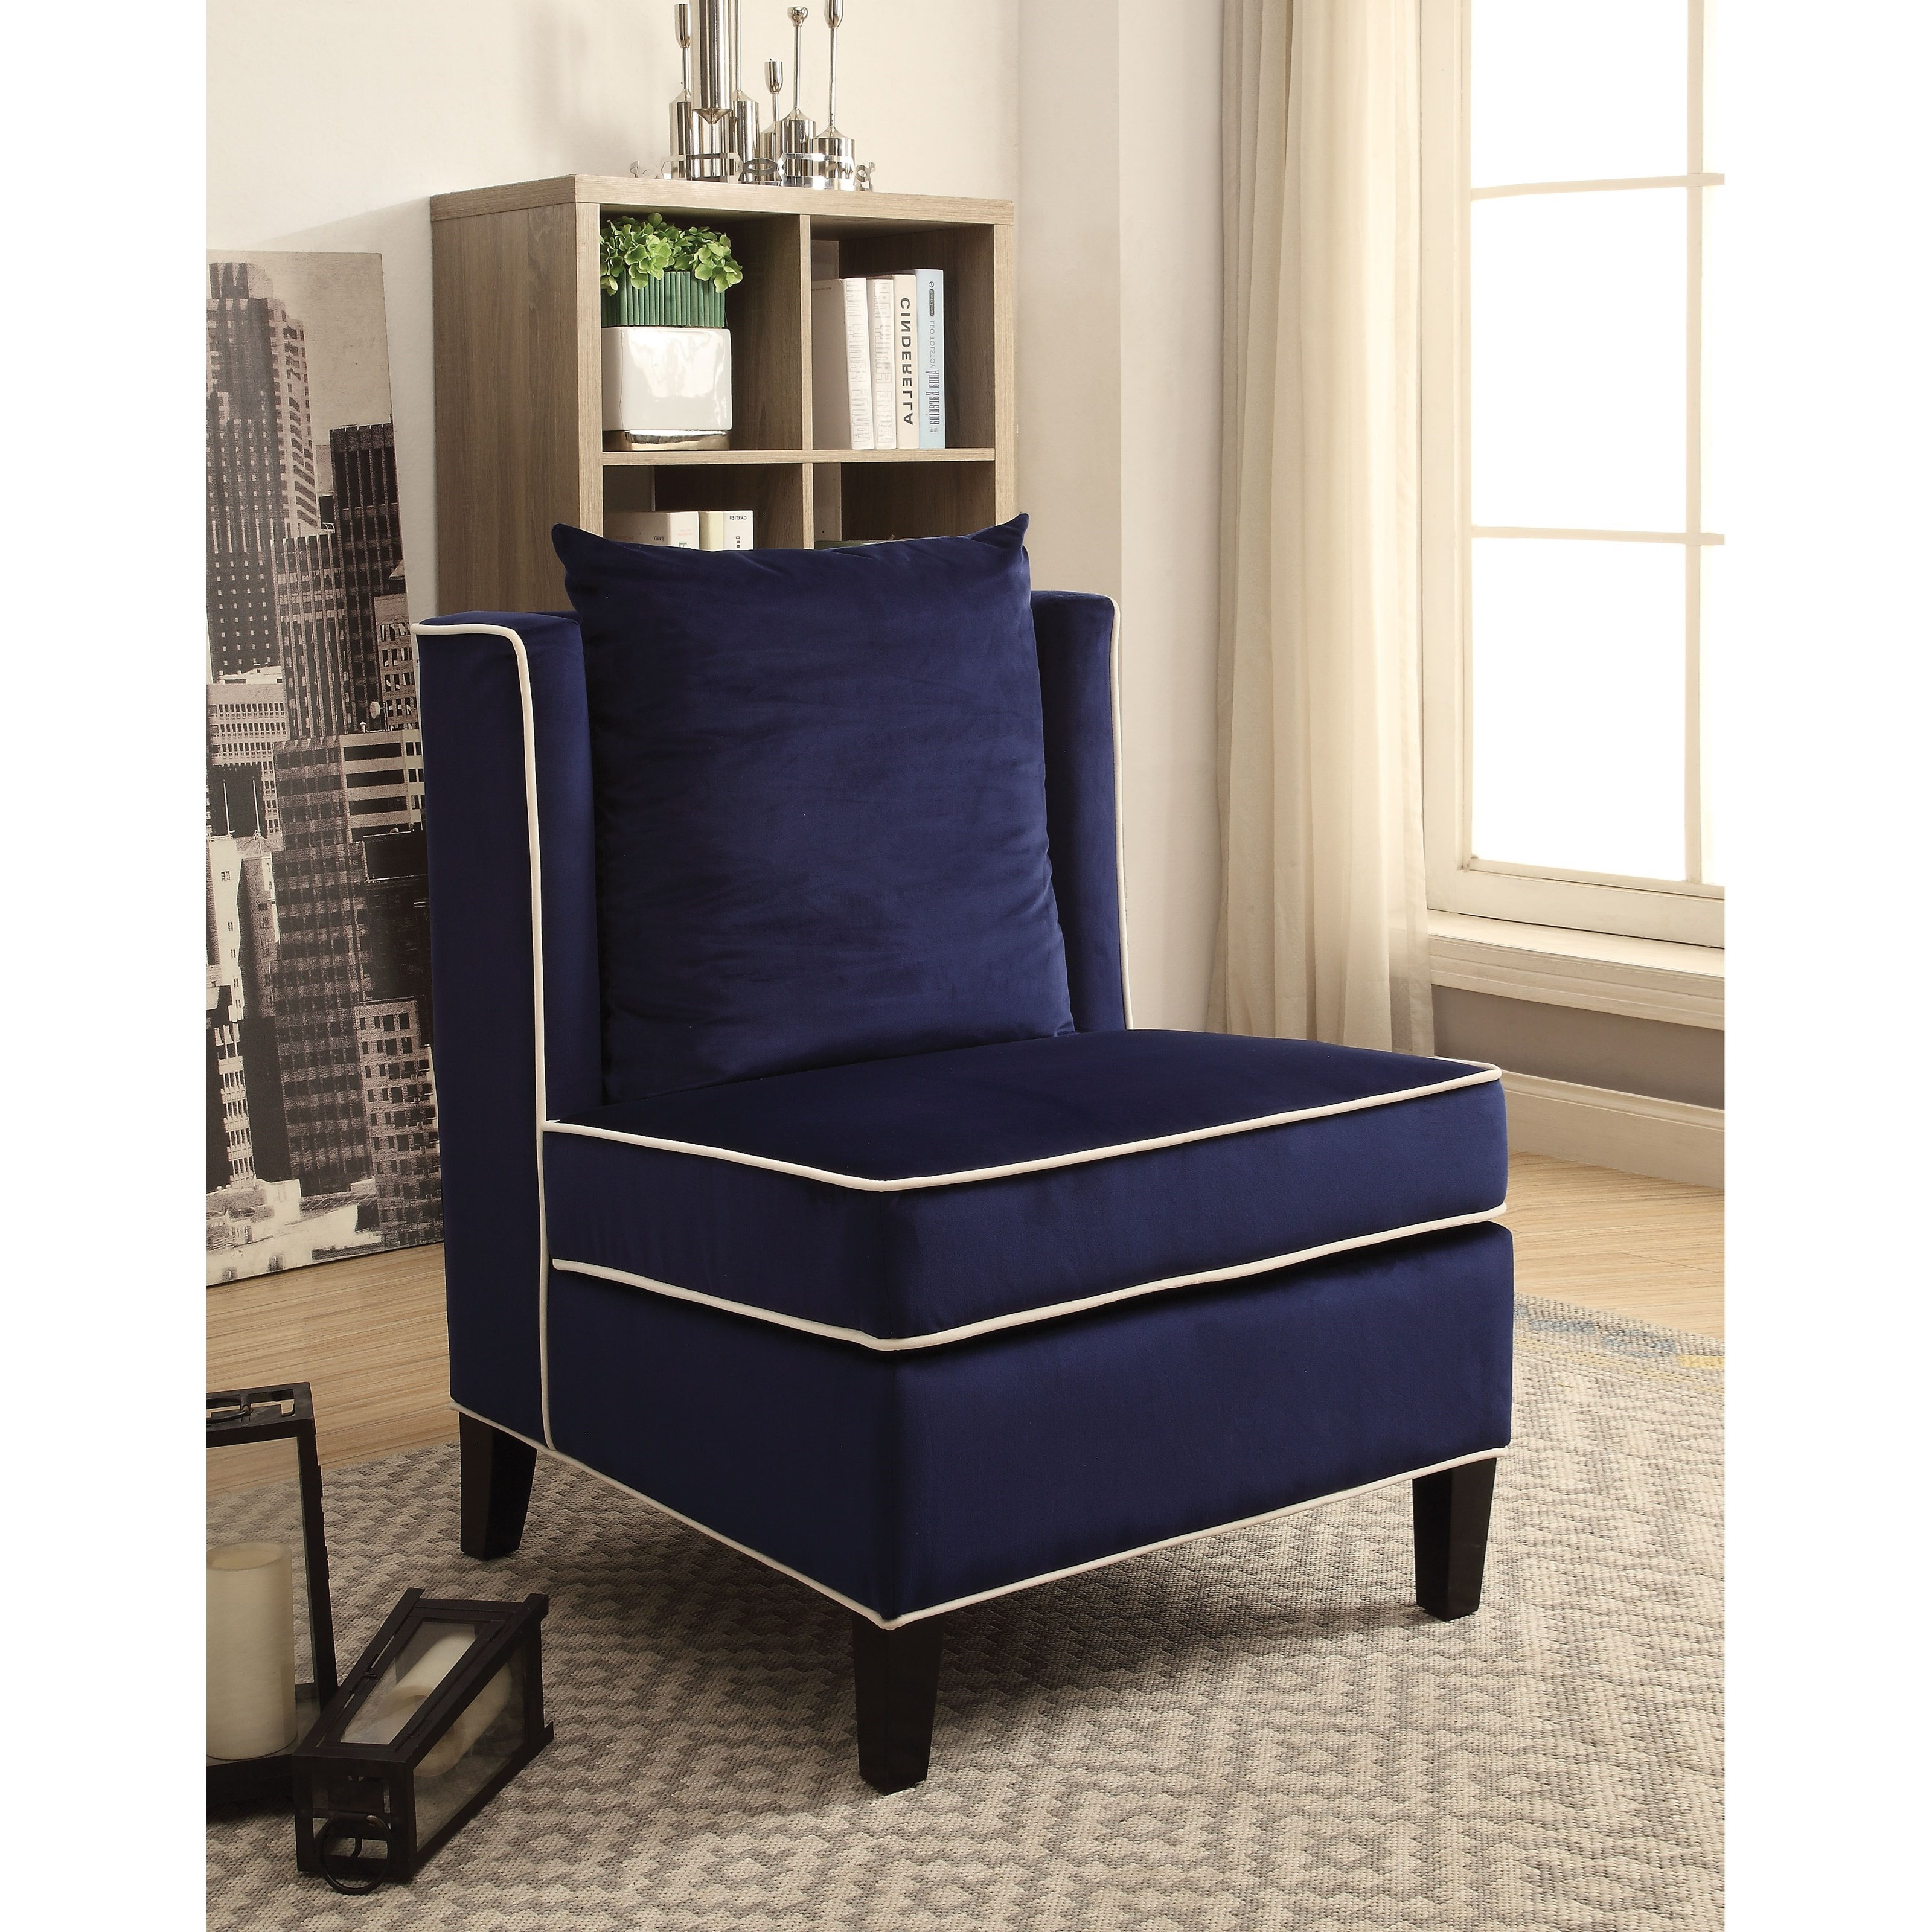 Ozella Upholstered Accent Chair by Acme Furniture at Del Sol Furniture